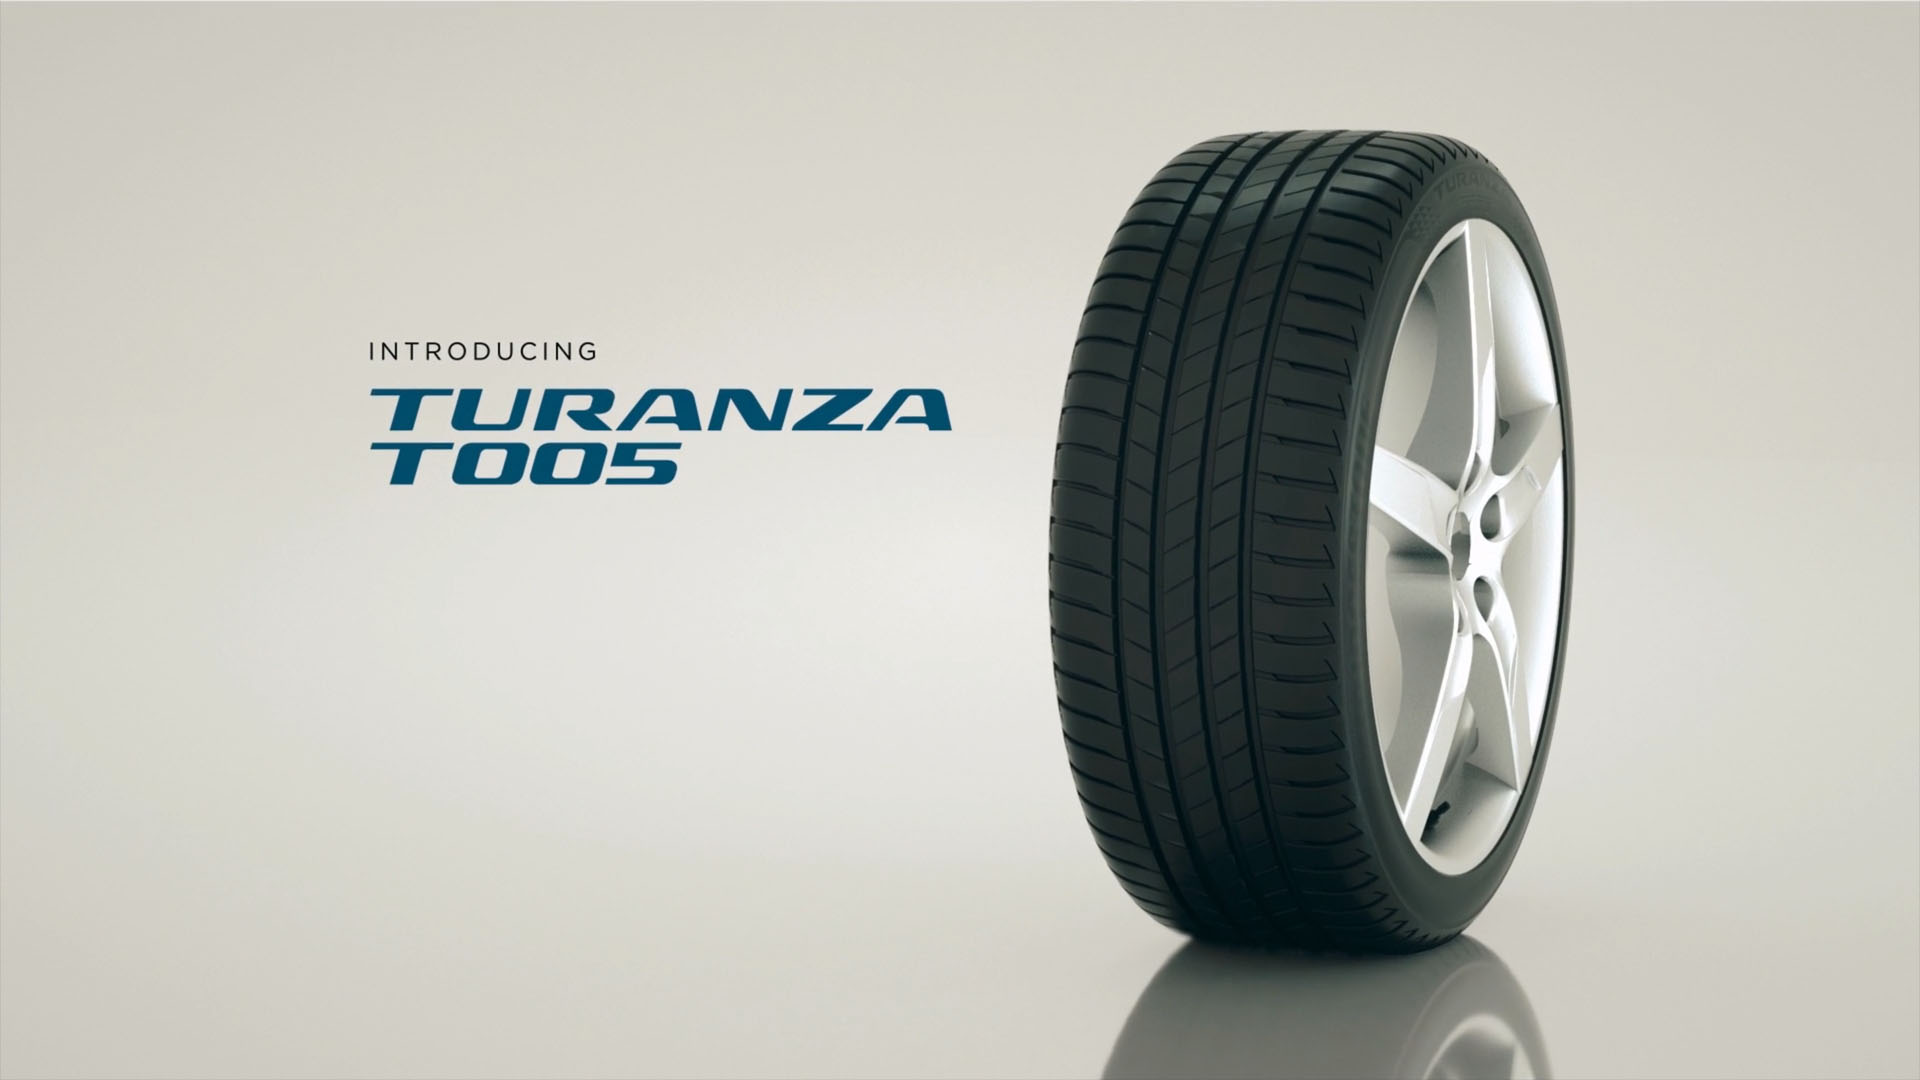 Bridgestone Turanza T005 Tyre Sizzle White Background